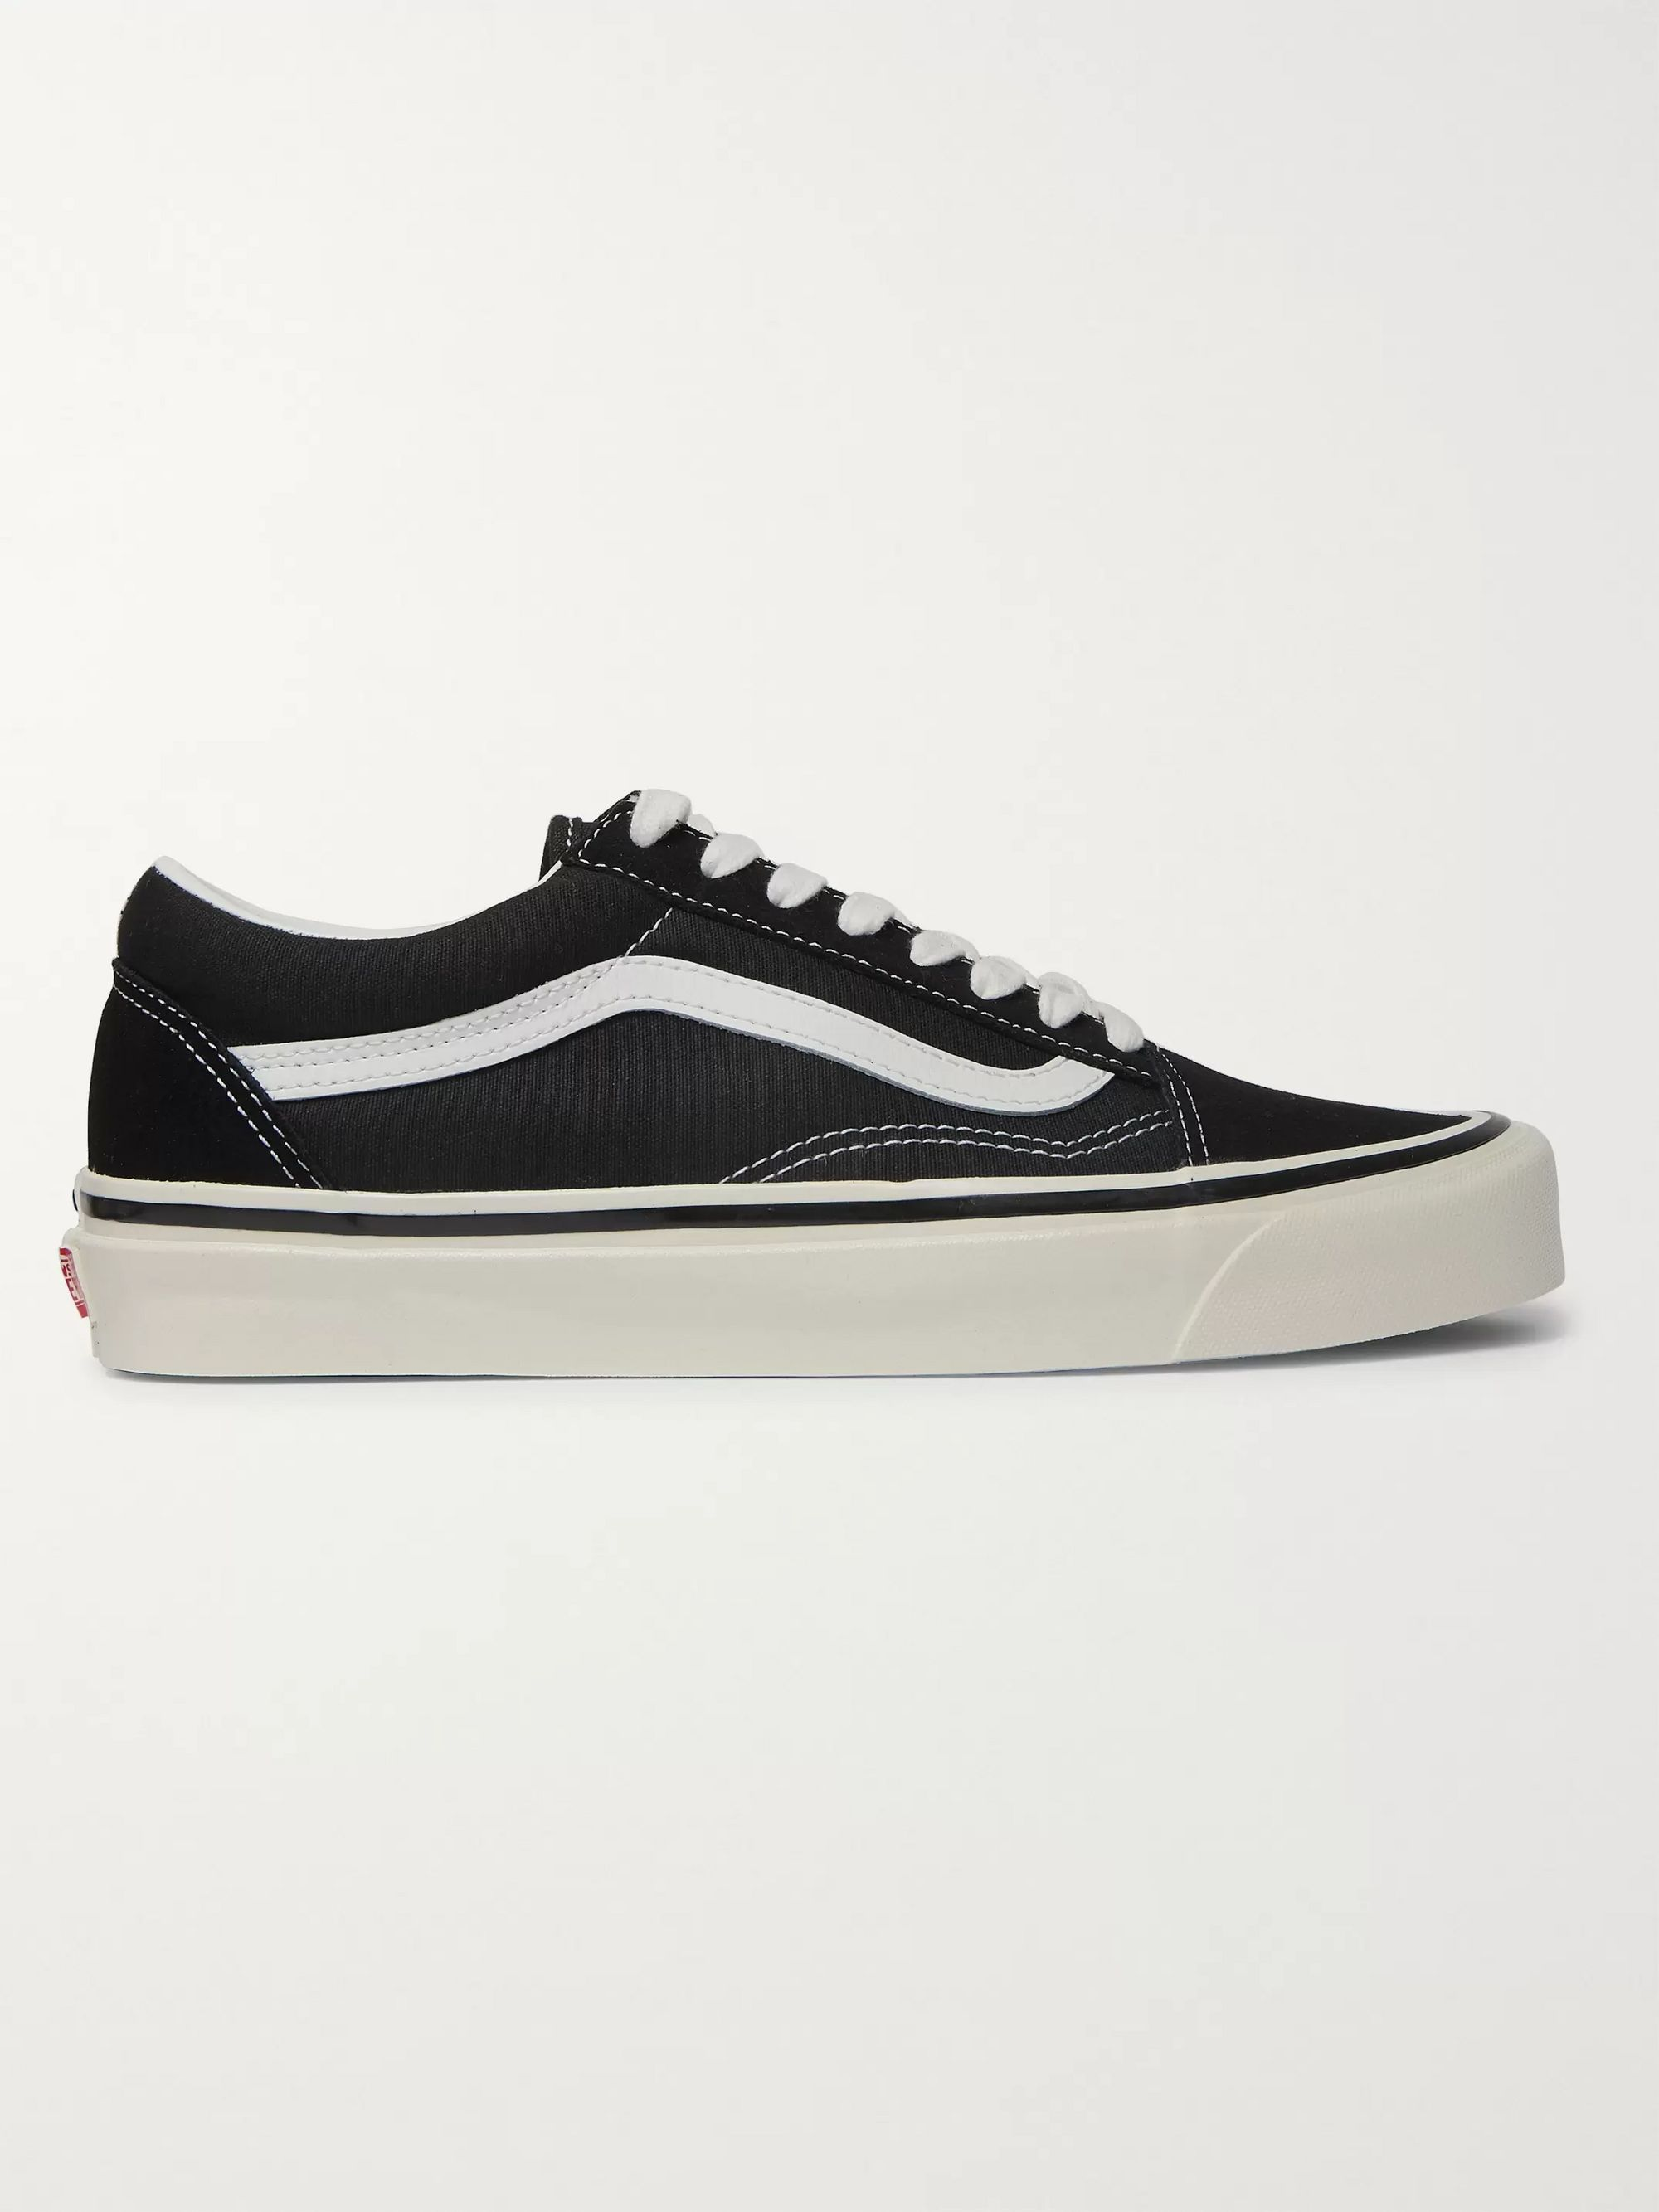 Vans Old Skool 36 DX Leather-Trimmed Canvas and Suede Sneakers